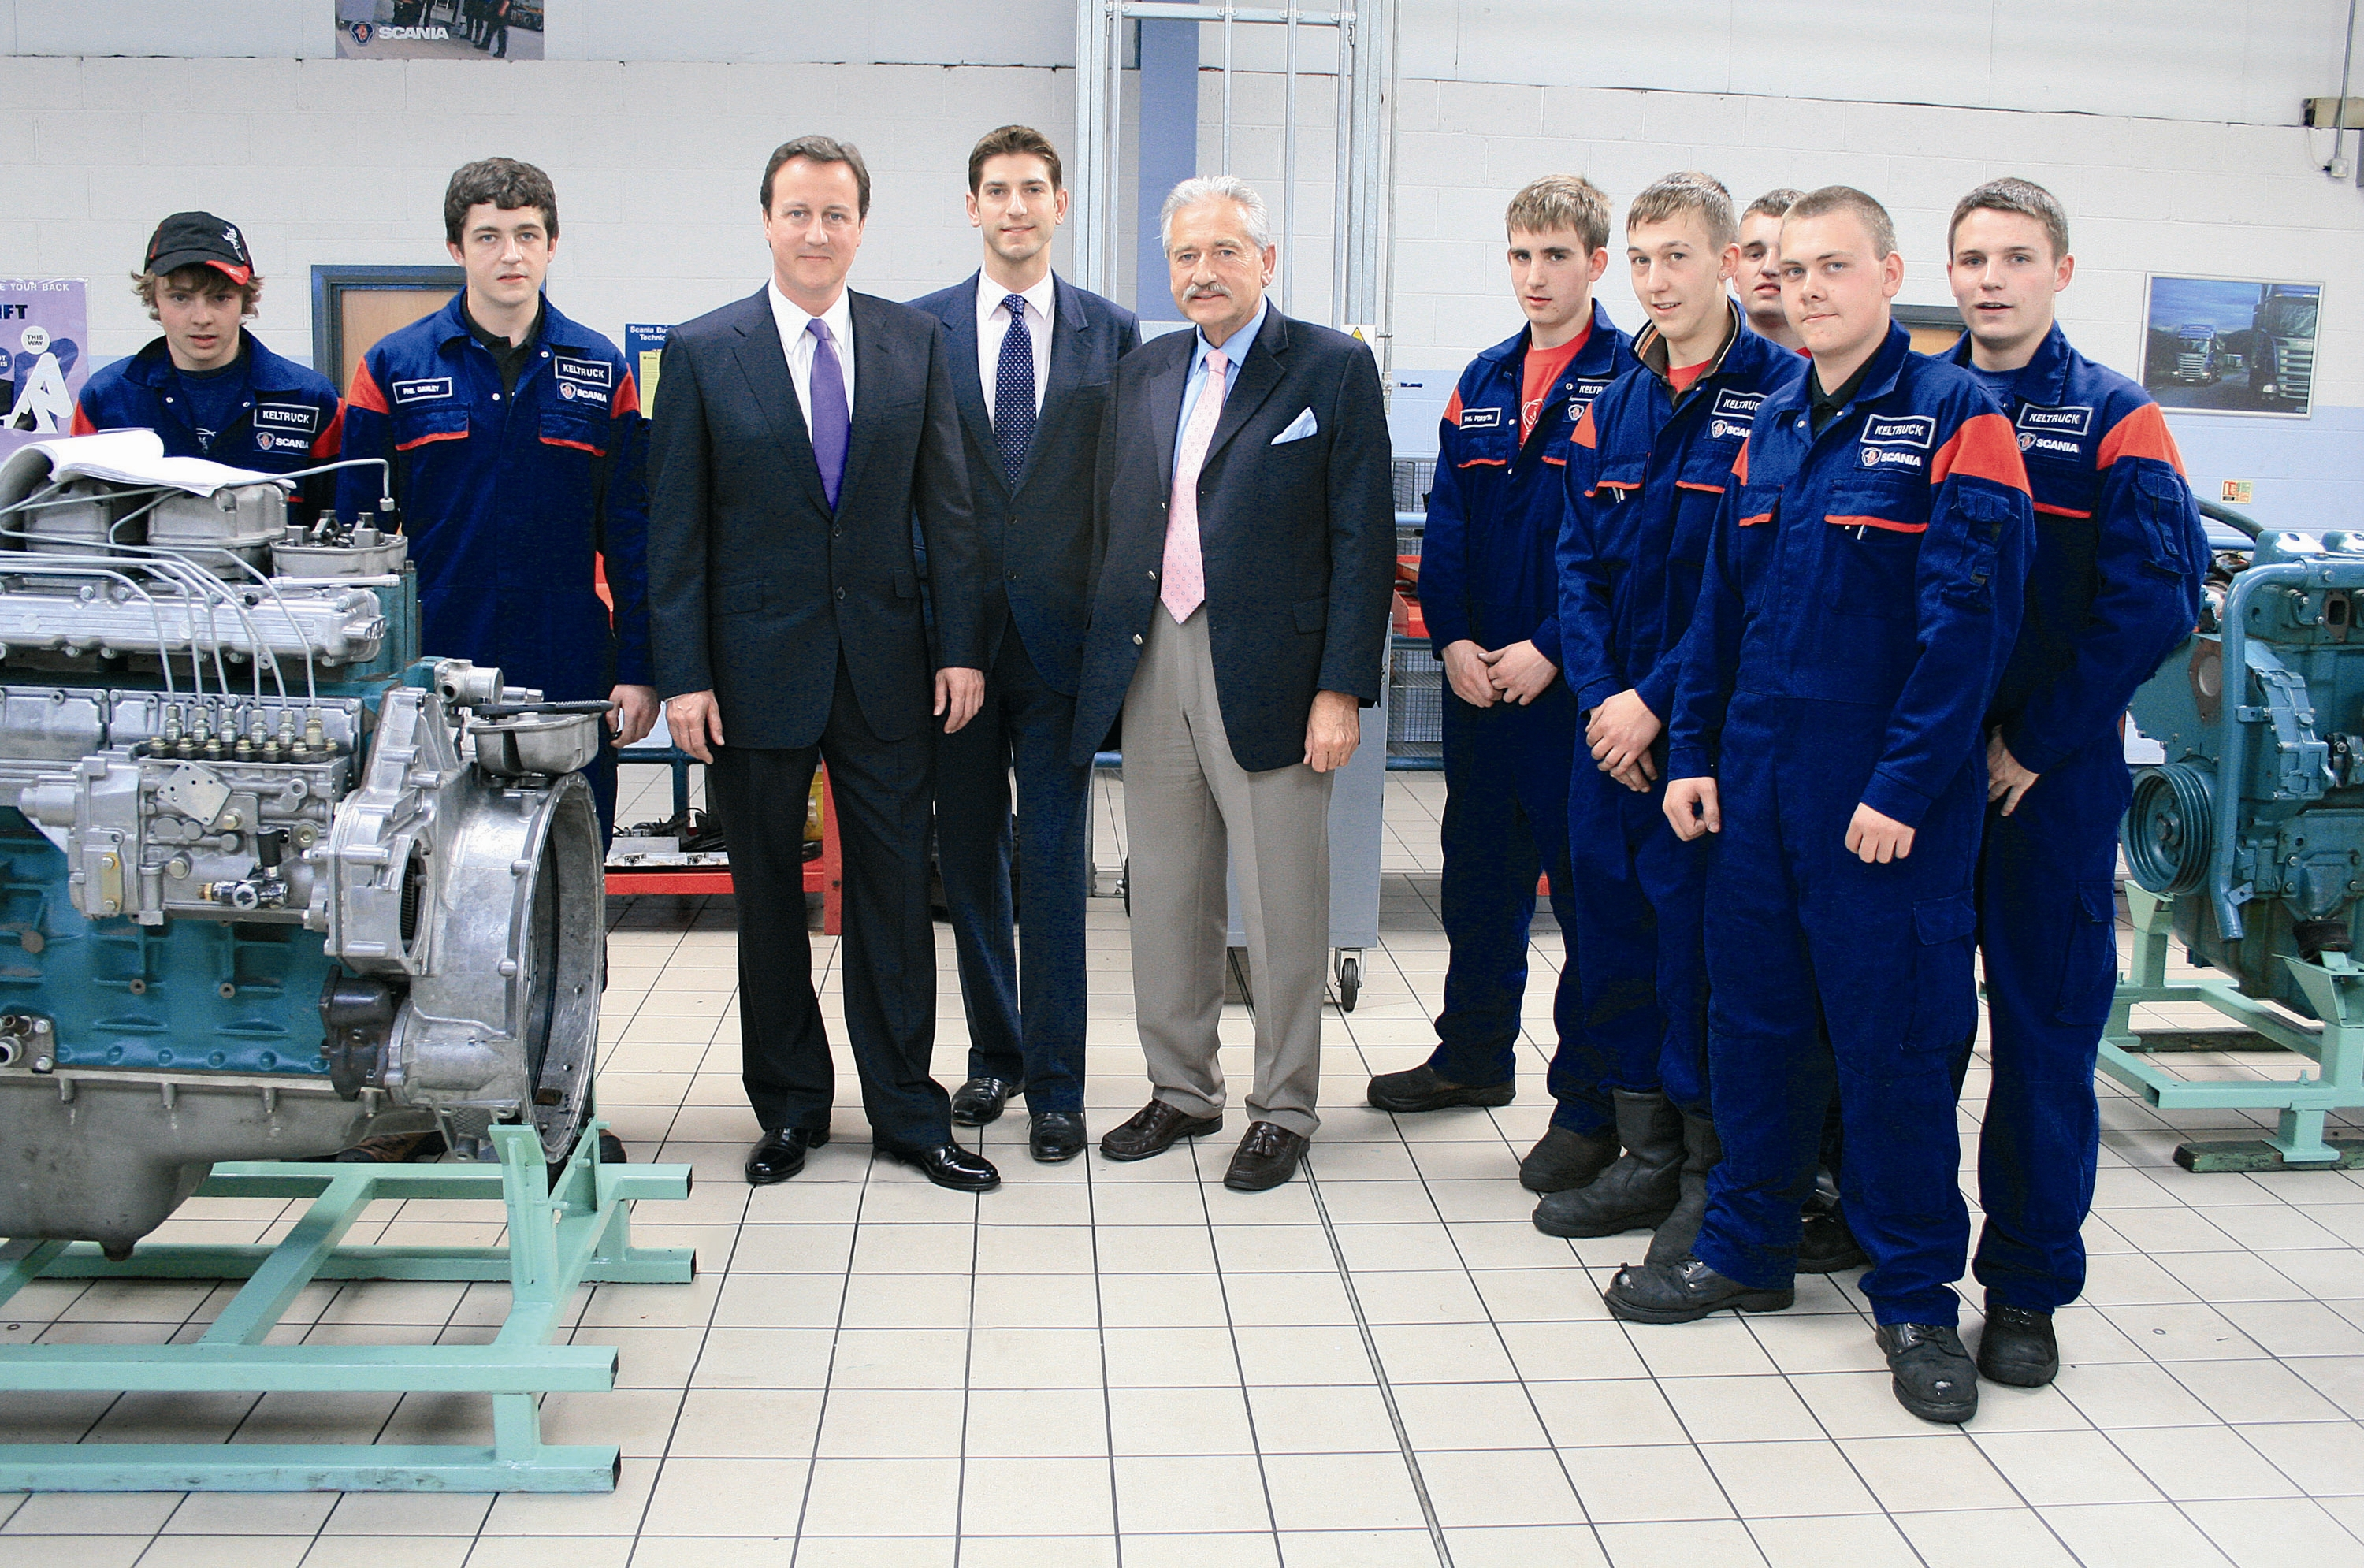 The Rt. Hon. David Cameron MP meets Keltruck apprentices